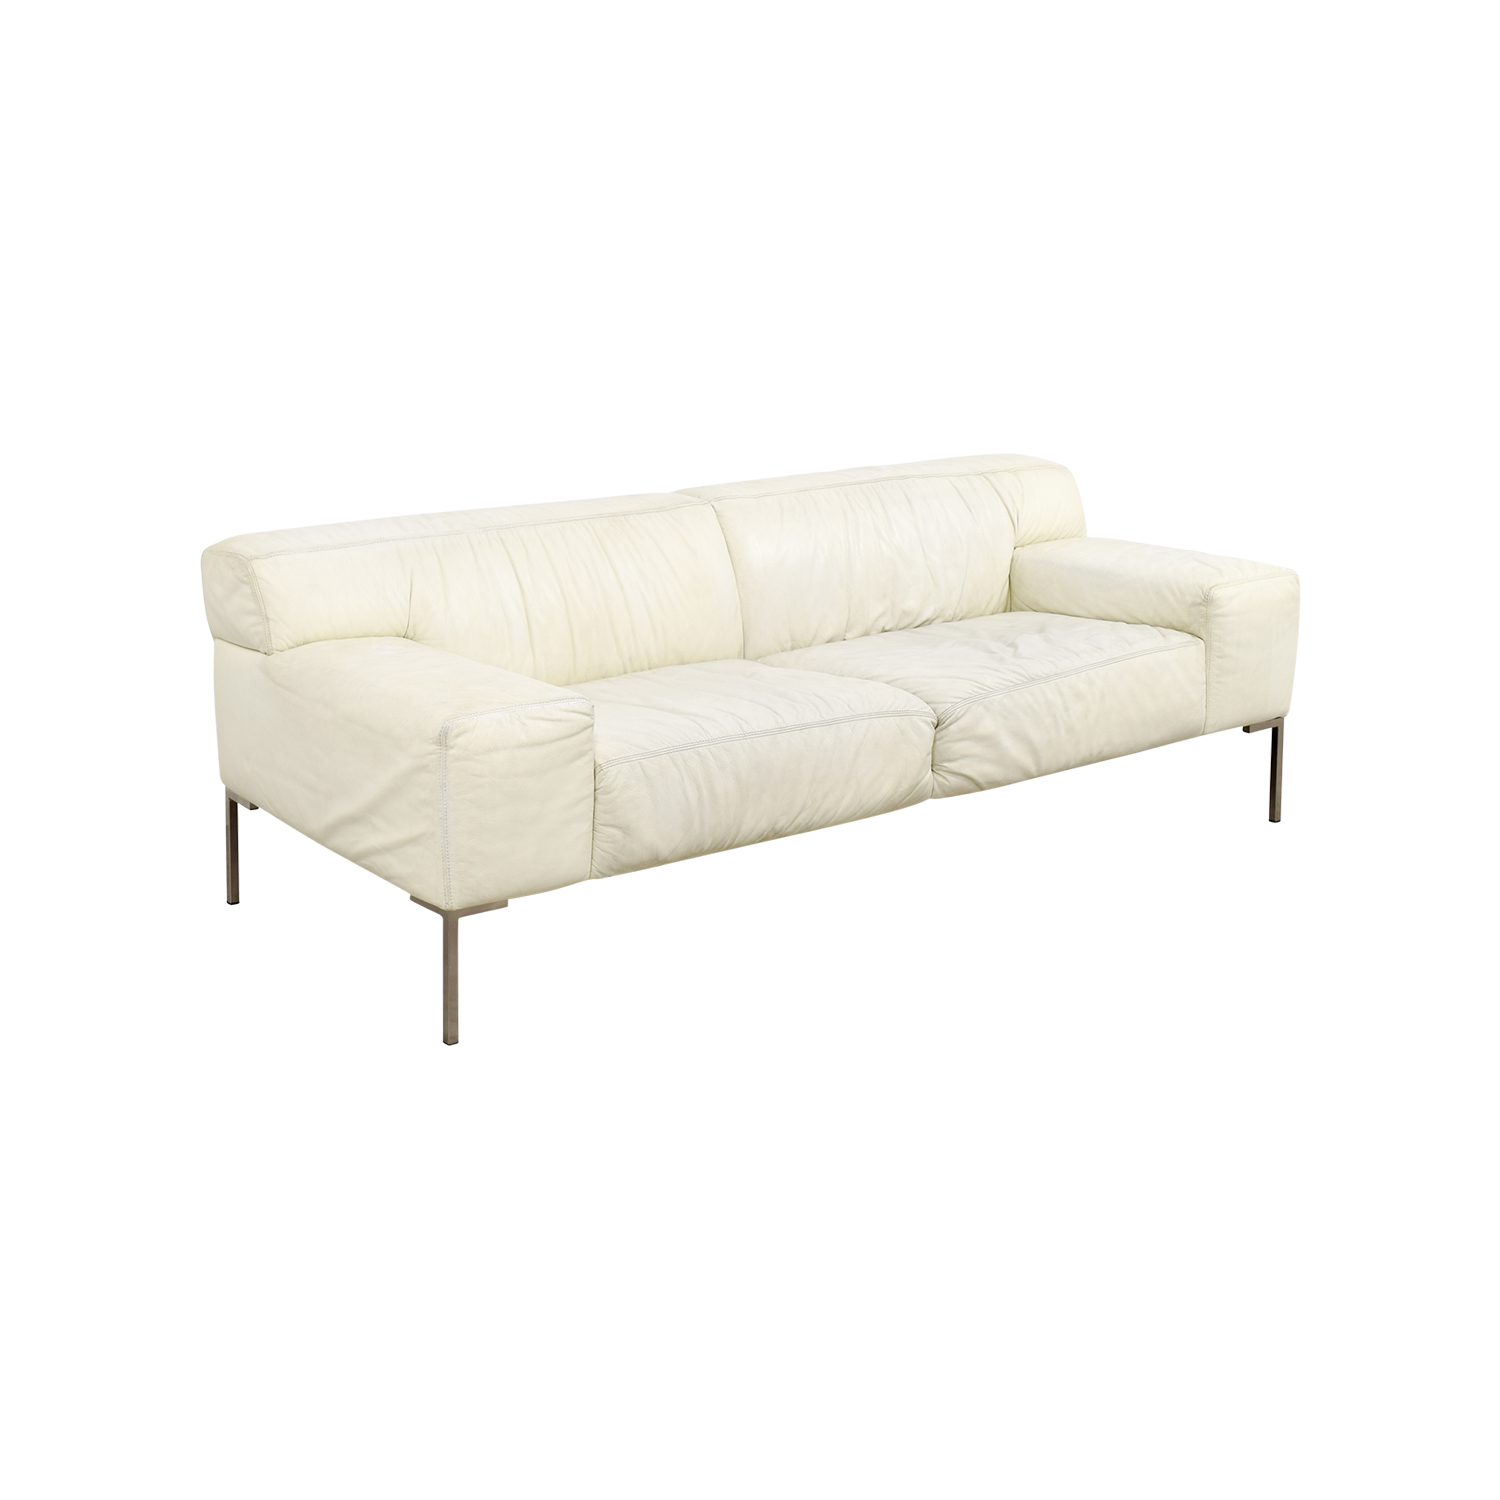 jensen lewis jensen lewis american leather tuscan white leather sofa nyc